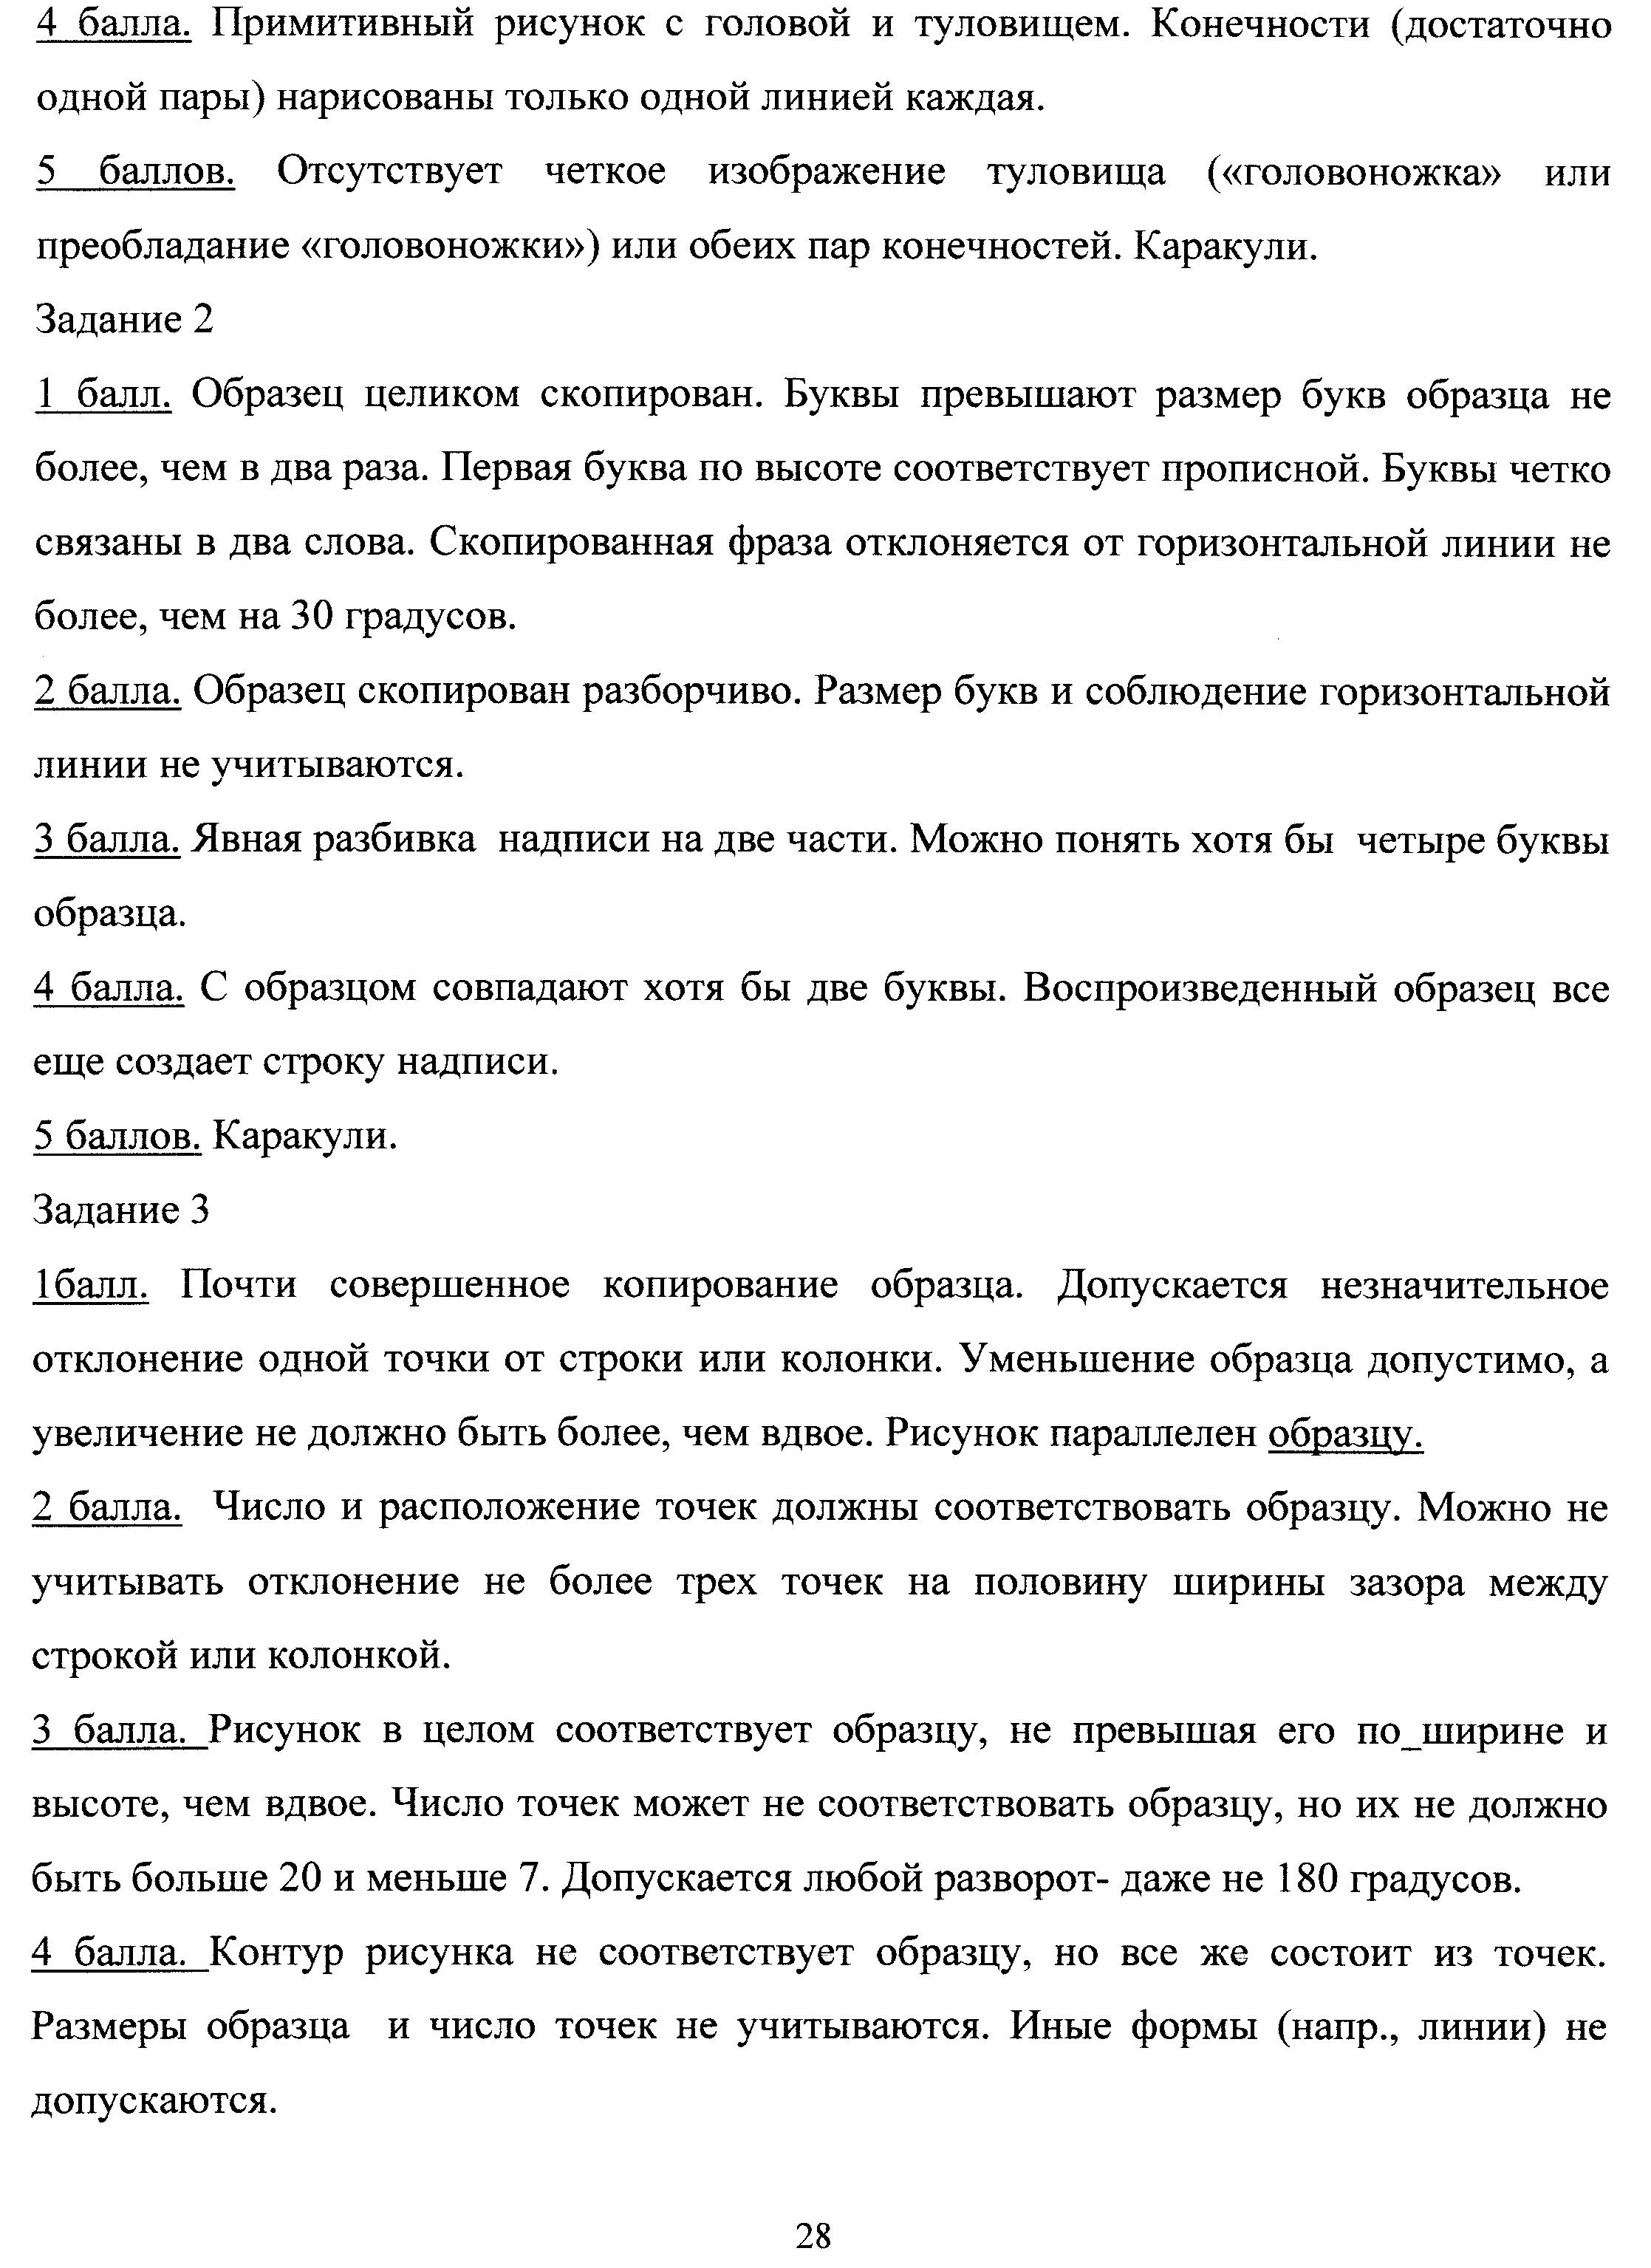 C:\Users\ЛАРИСА\Documents\Scanned Documents\Рисунок (132).jpg